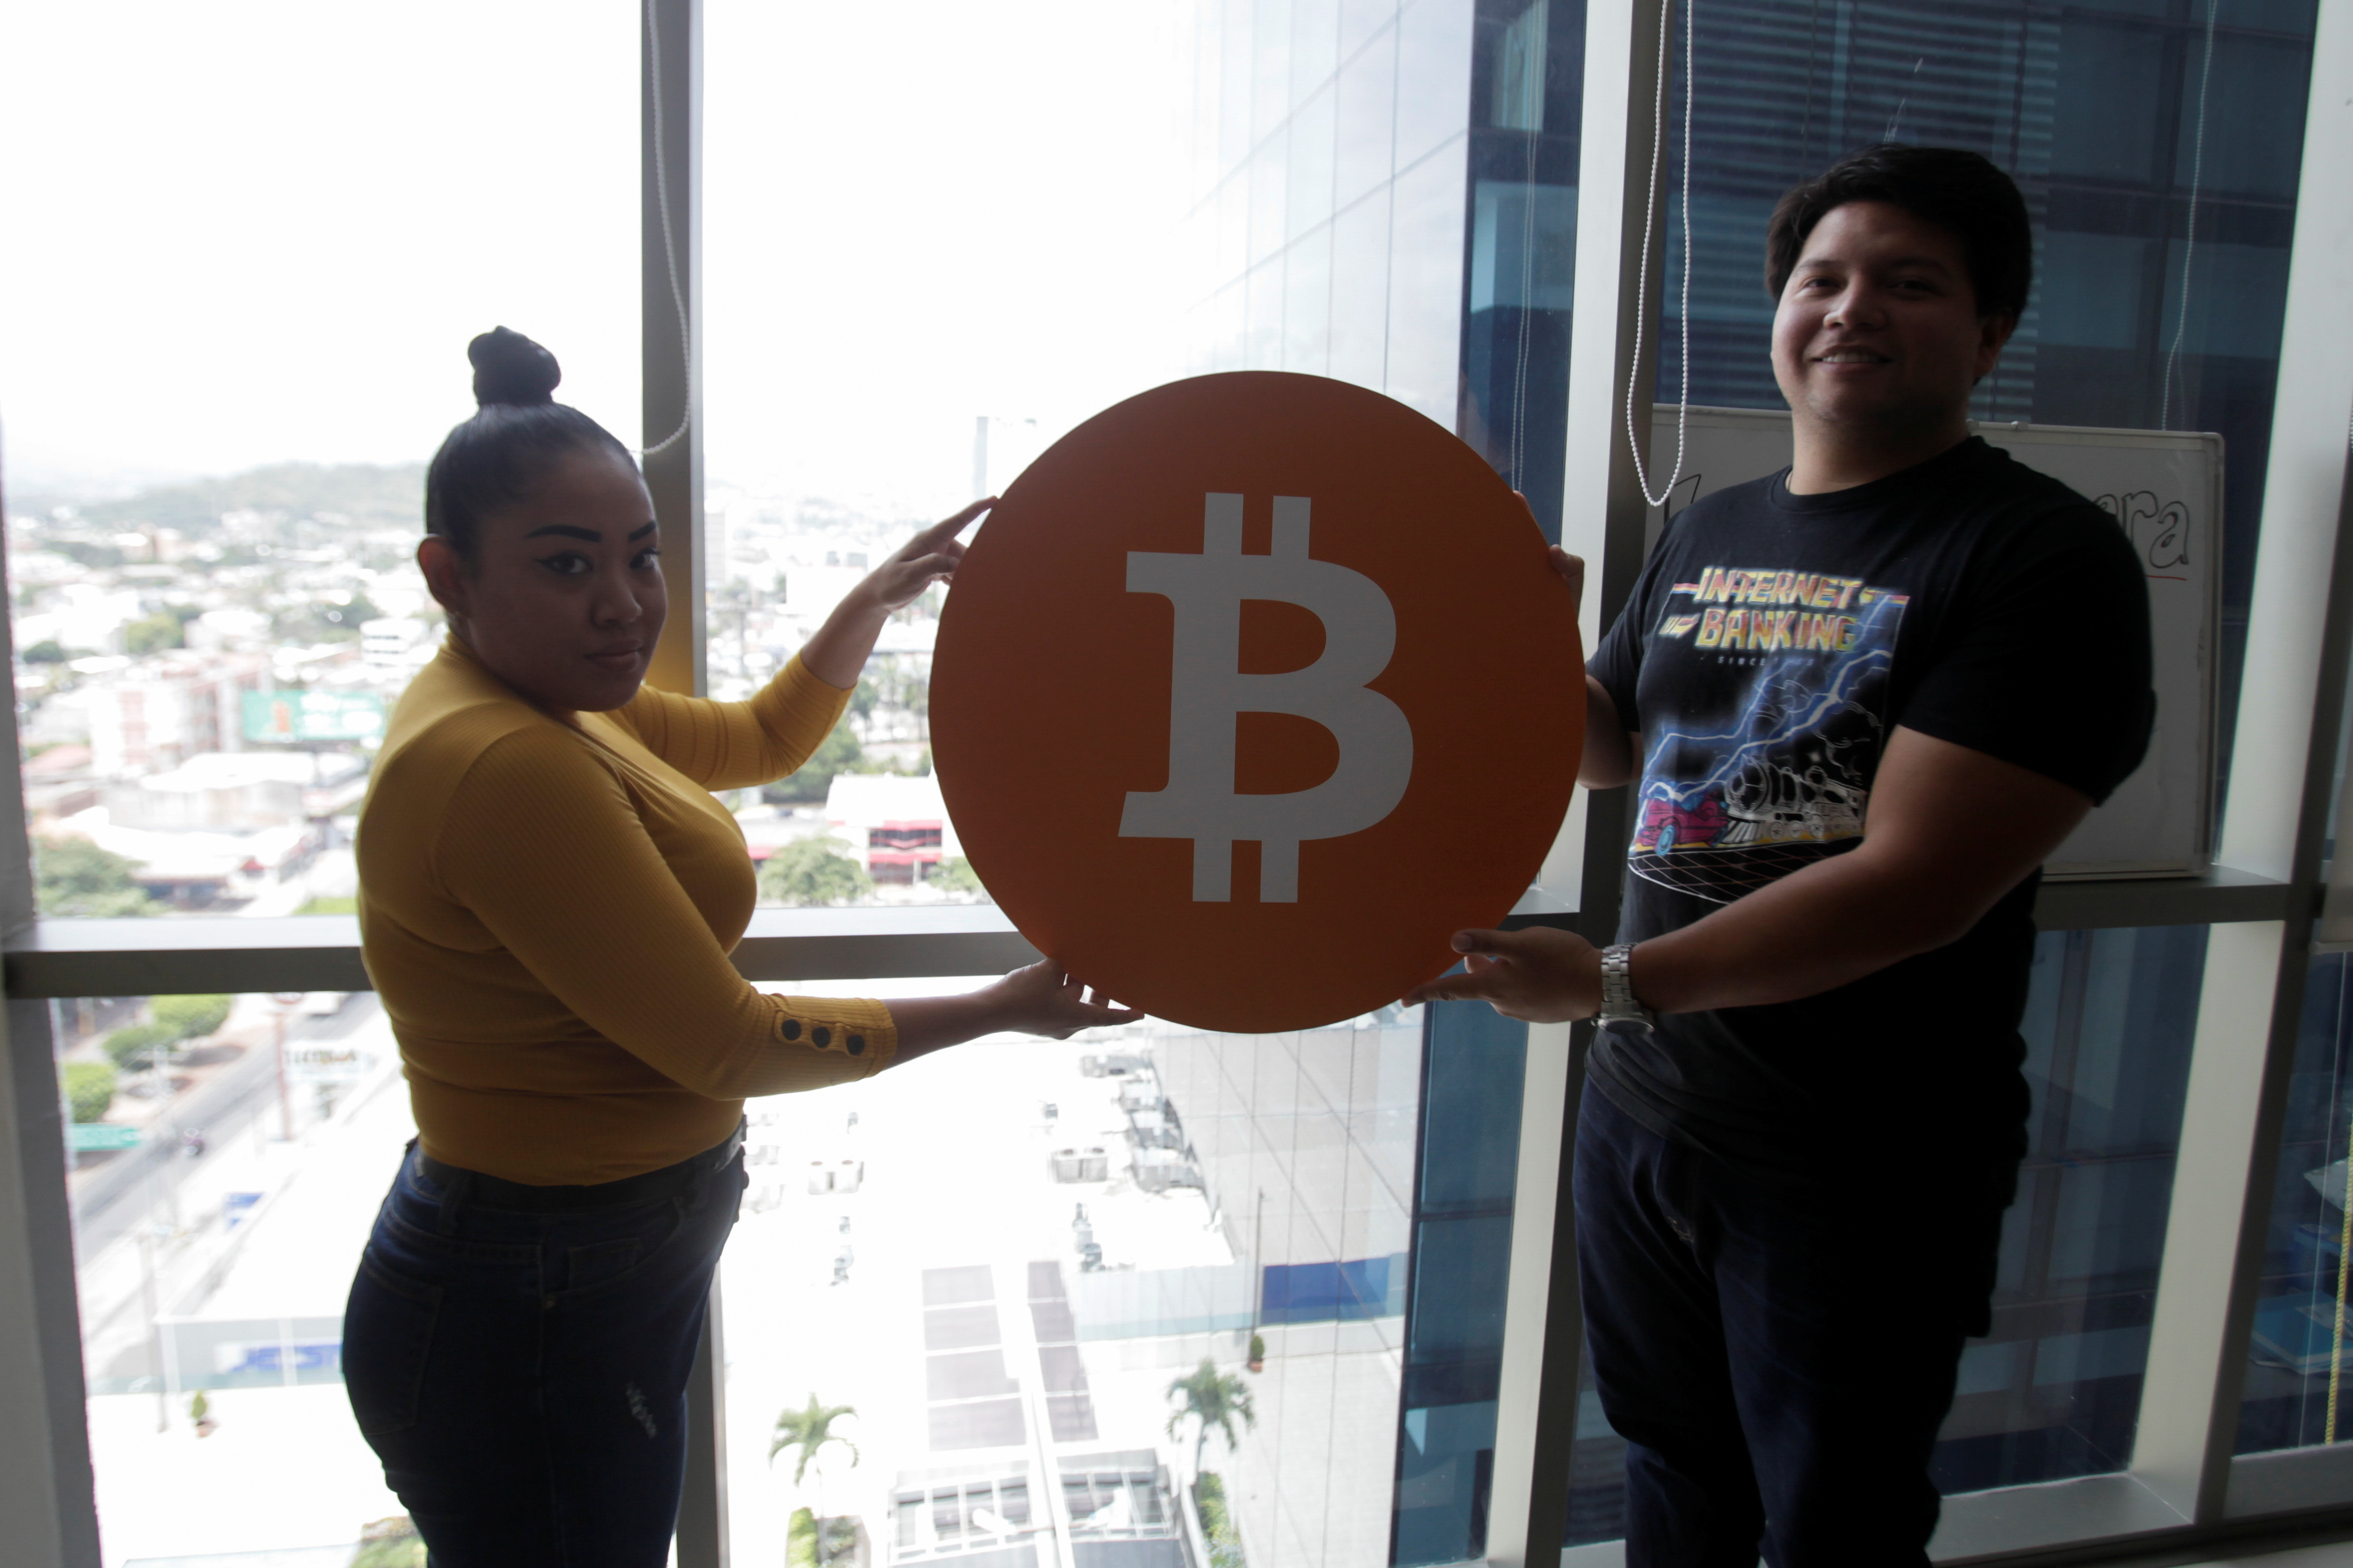 Juan Mayen, 28, chief executive of Honduran firm TGU Consulting Group, and Claudia Suazo pose for a photo holding a Bitcoin logo at the office of TGU where they installed the first cryptocurrency ATM machine in the country that allows users to acquire bitcoin and ethereum using the local lempira currency, in Tegucigalpa, Honduras August 27, 2021. REUTERS/Fredy Rodriguez